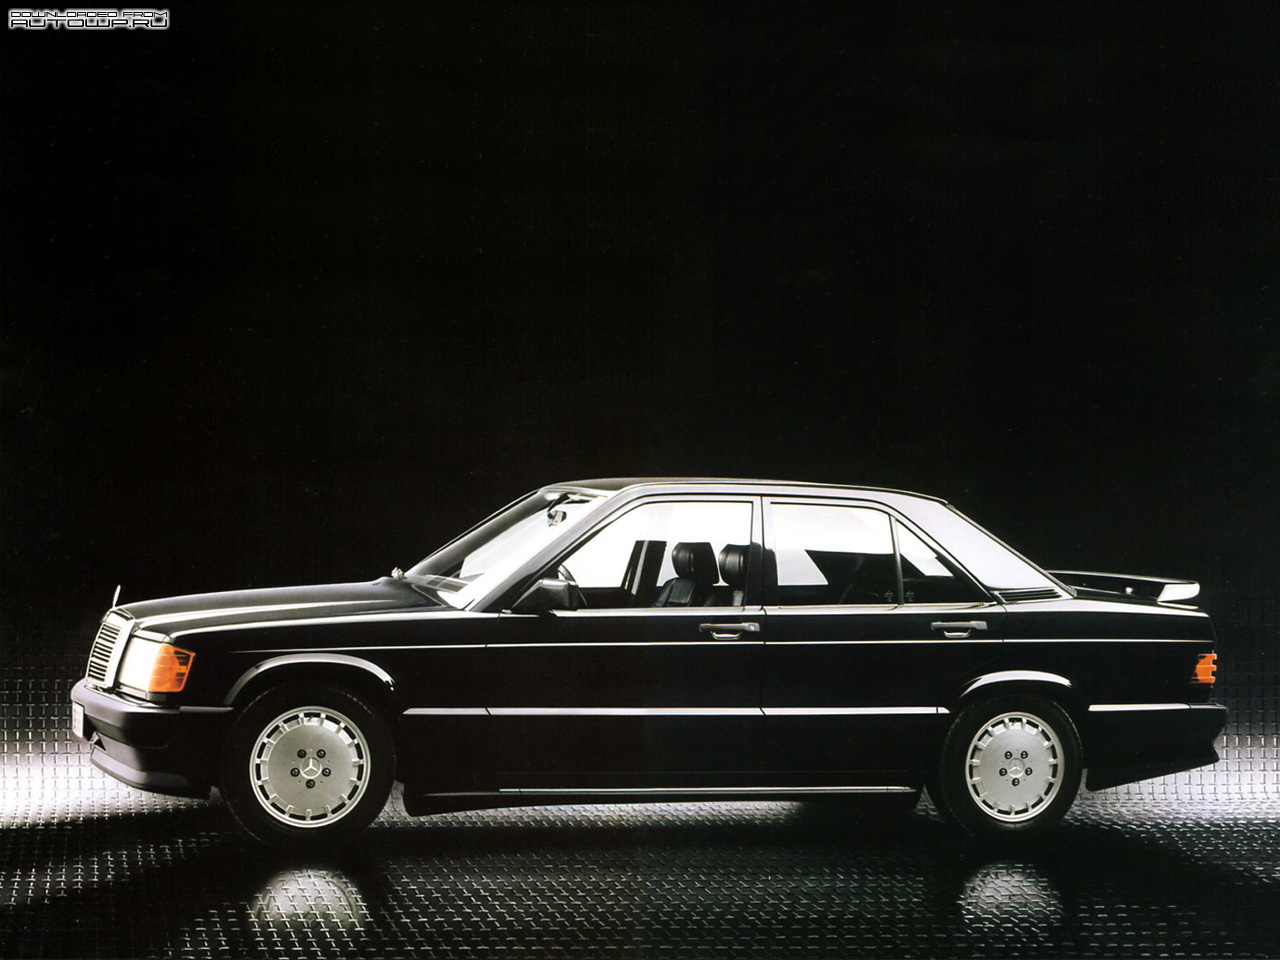 Mercedes benz c class w201 photos photo gallery page 2 for Mercedes benz 190e cosworth